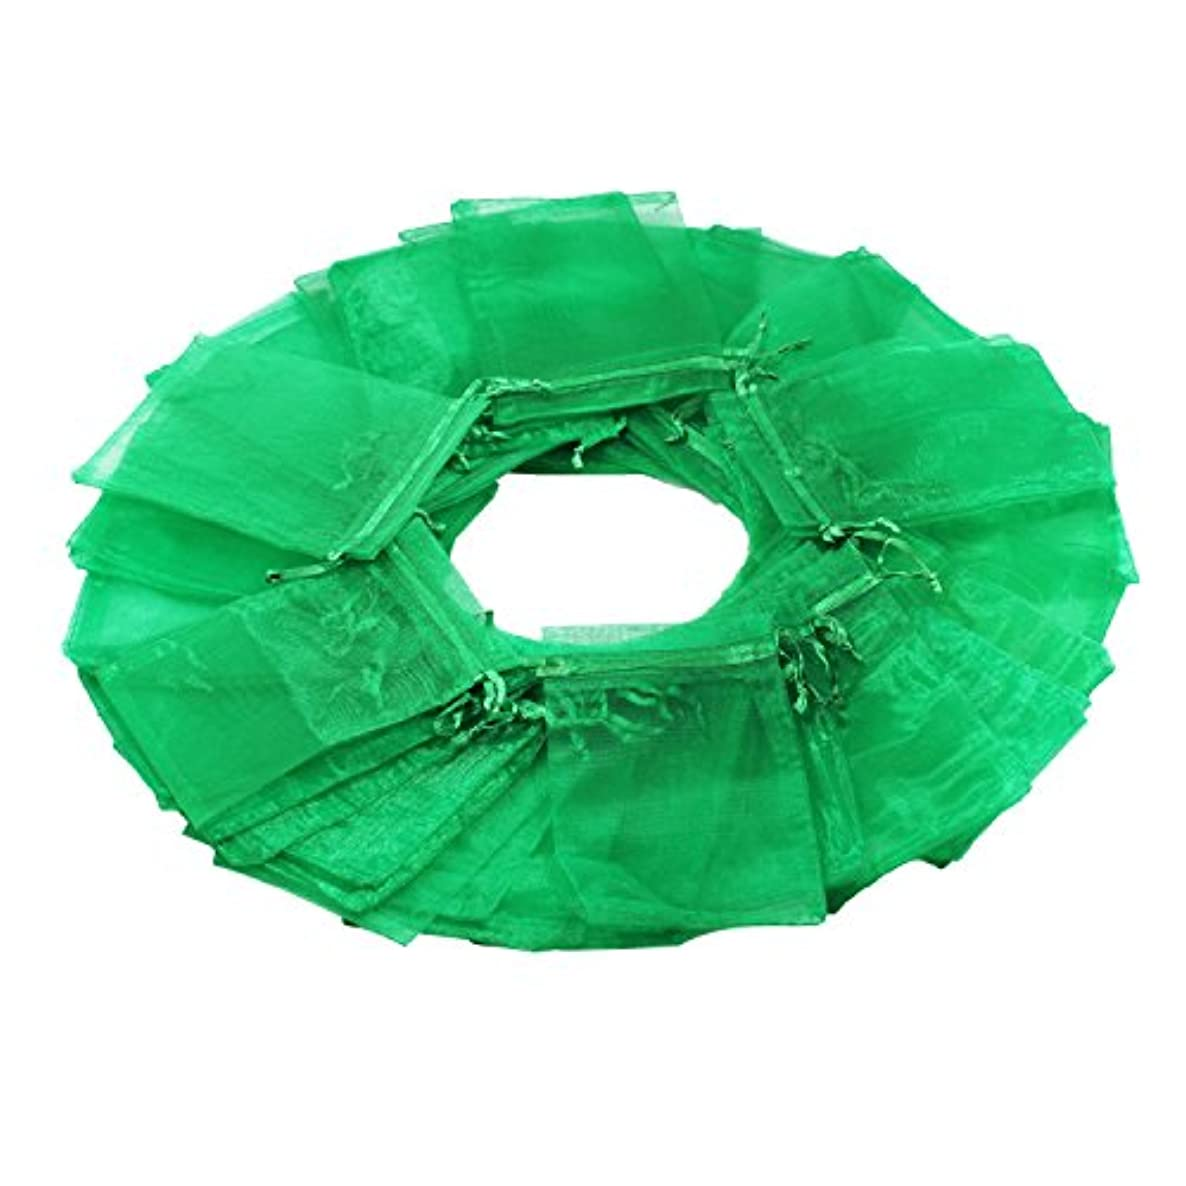 100Pcs 4x6 Inches Sheer Drawstring Organza Jewelry Pouches Wedding Party Christmas Favor Gift Bags (Green)